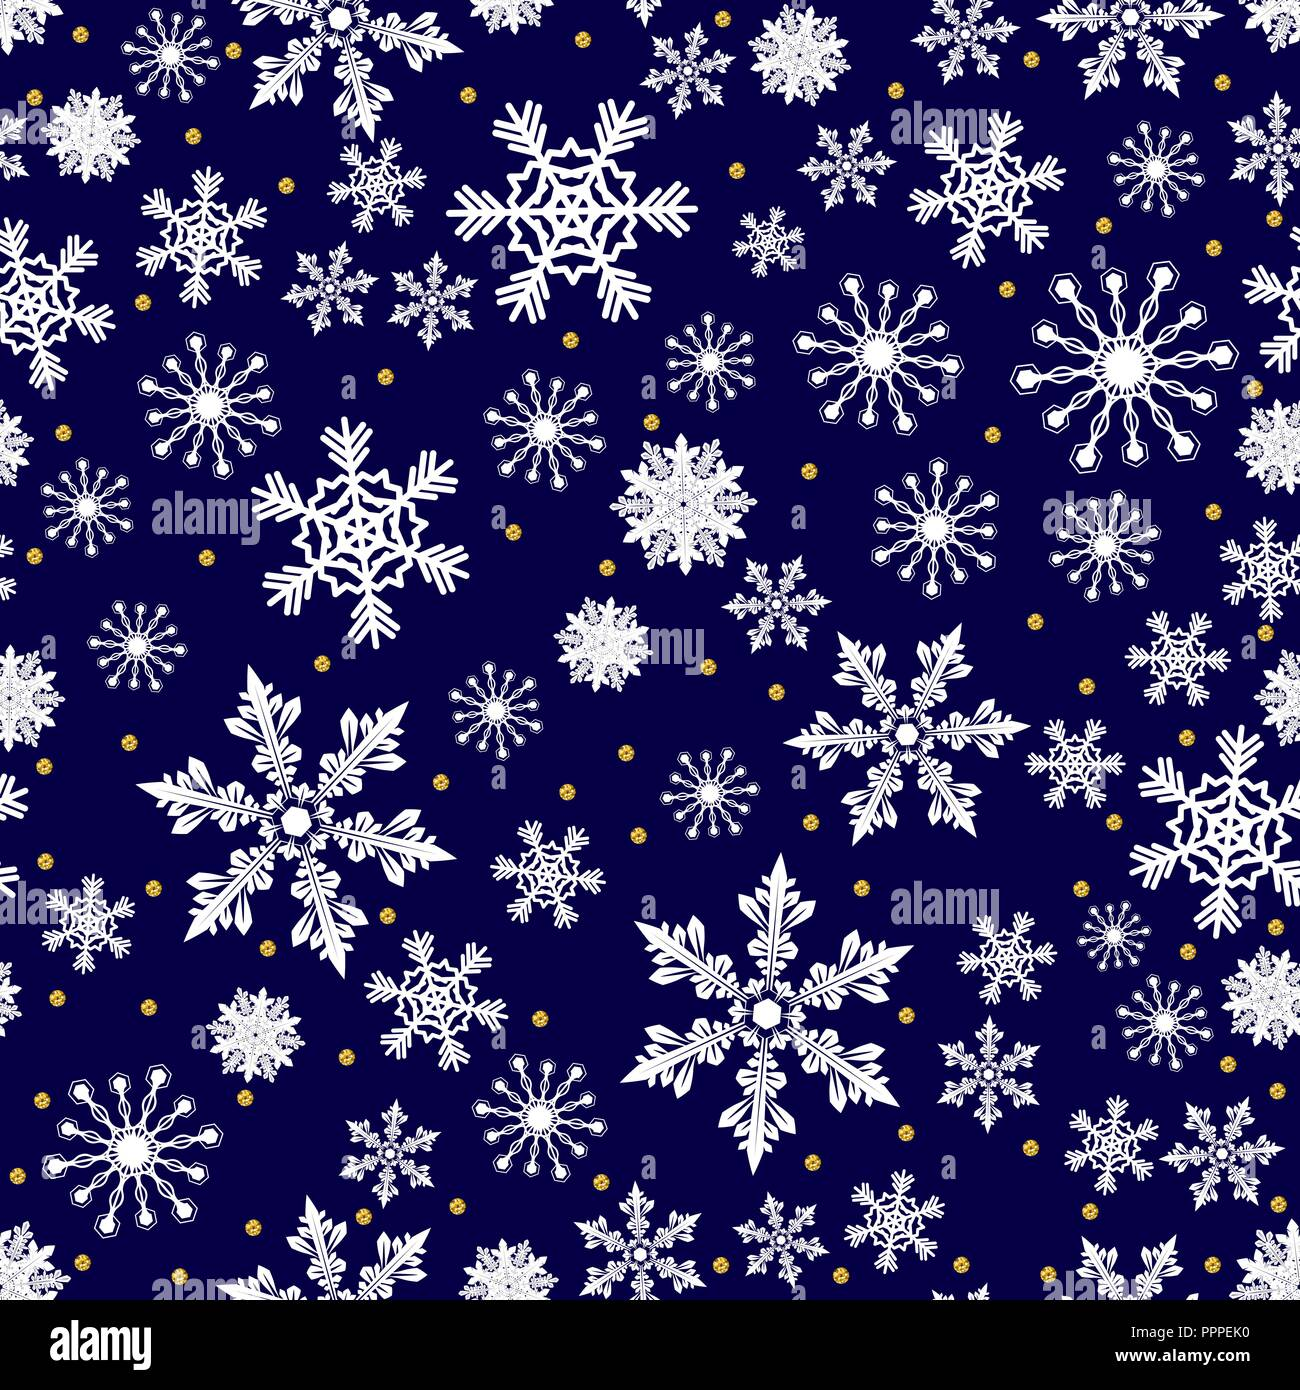 Christmas Pattern.Christmas Pattern Made Of White Snowflakes And Golden Dots